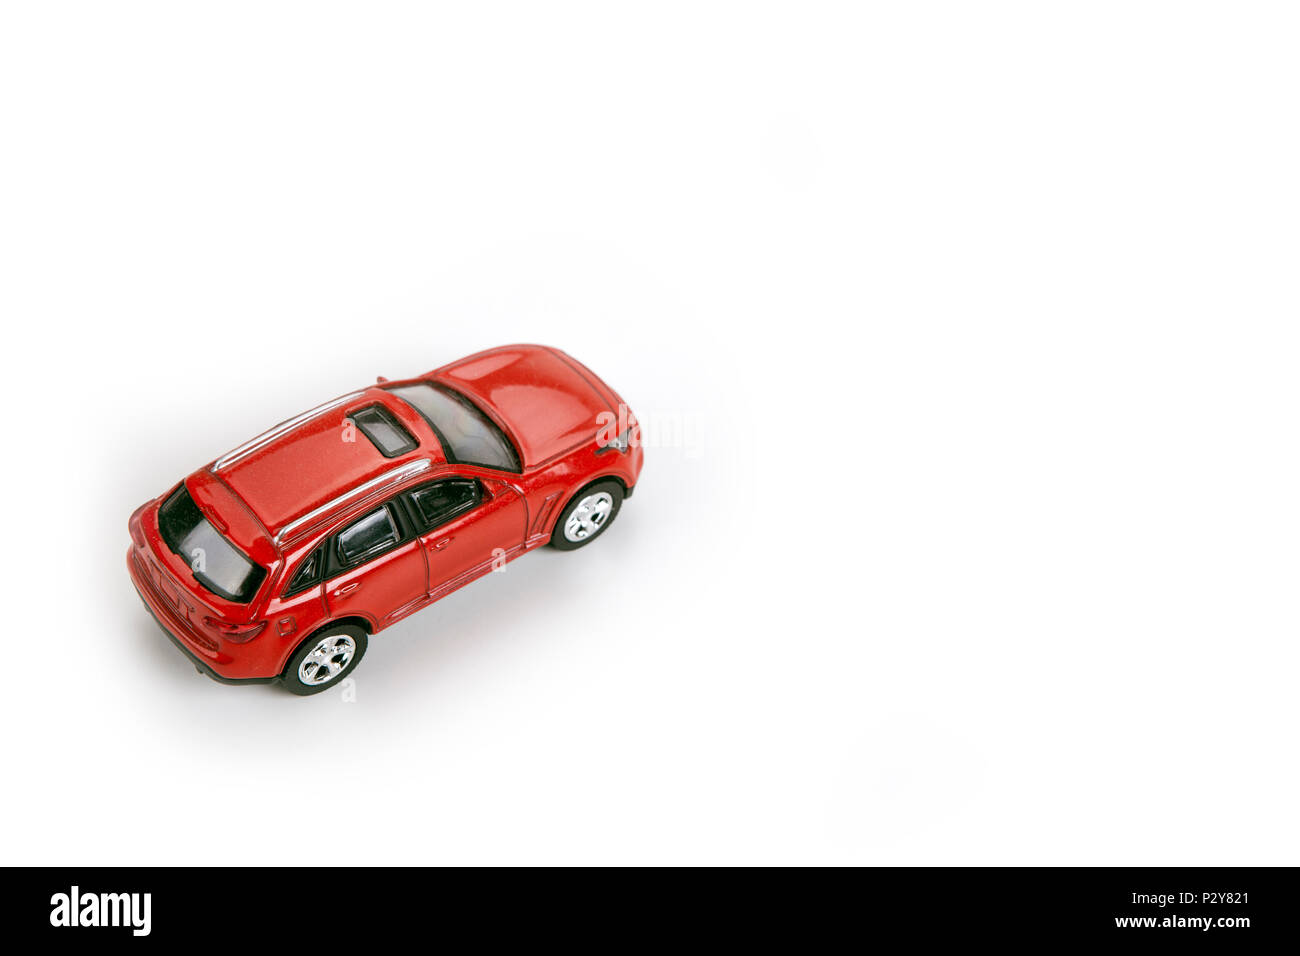 red car model on a white background closeup - Stock Image